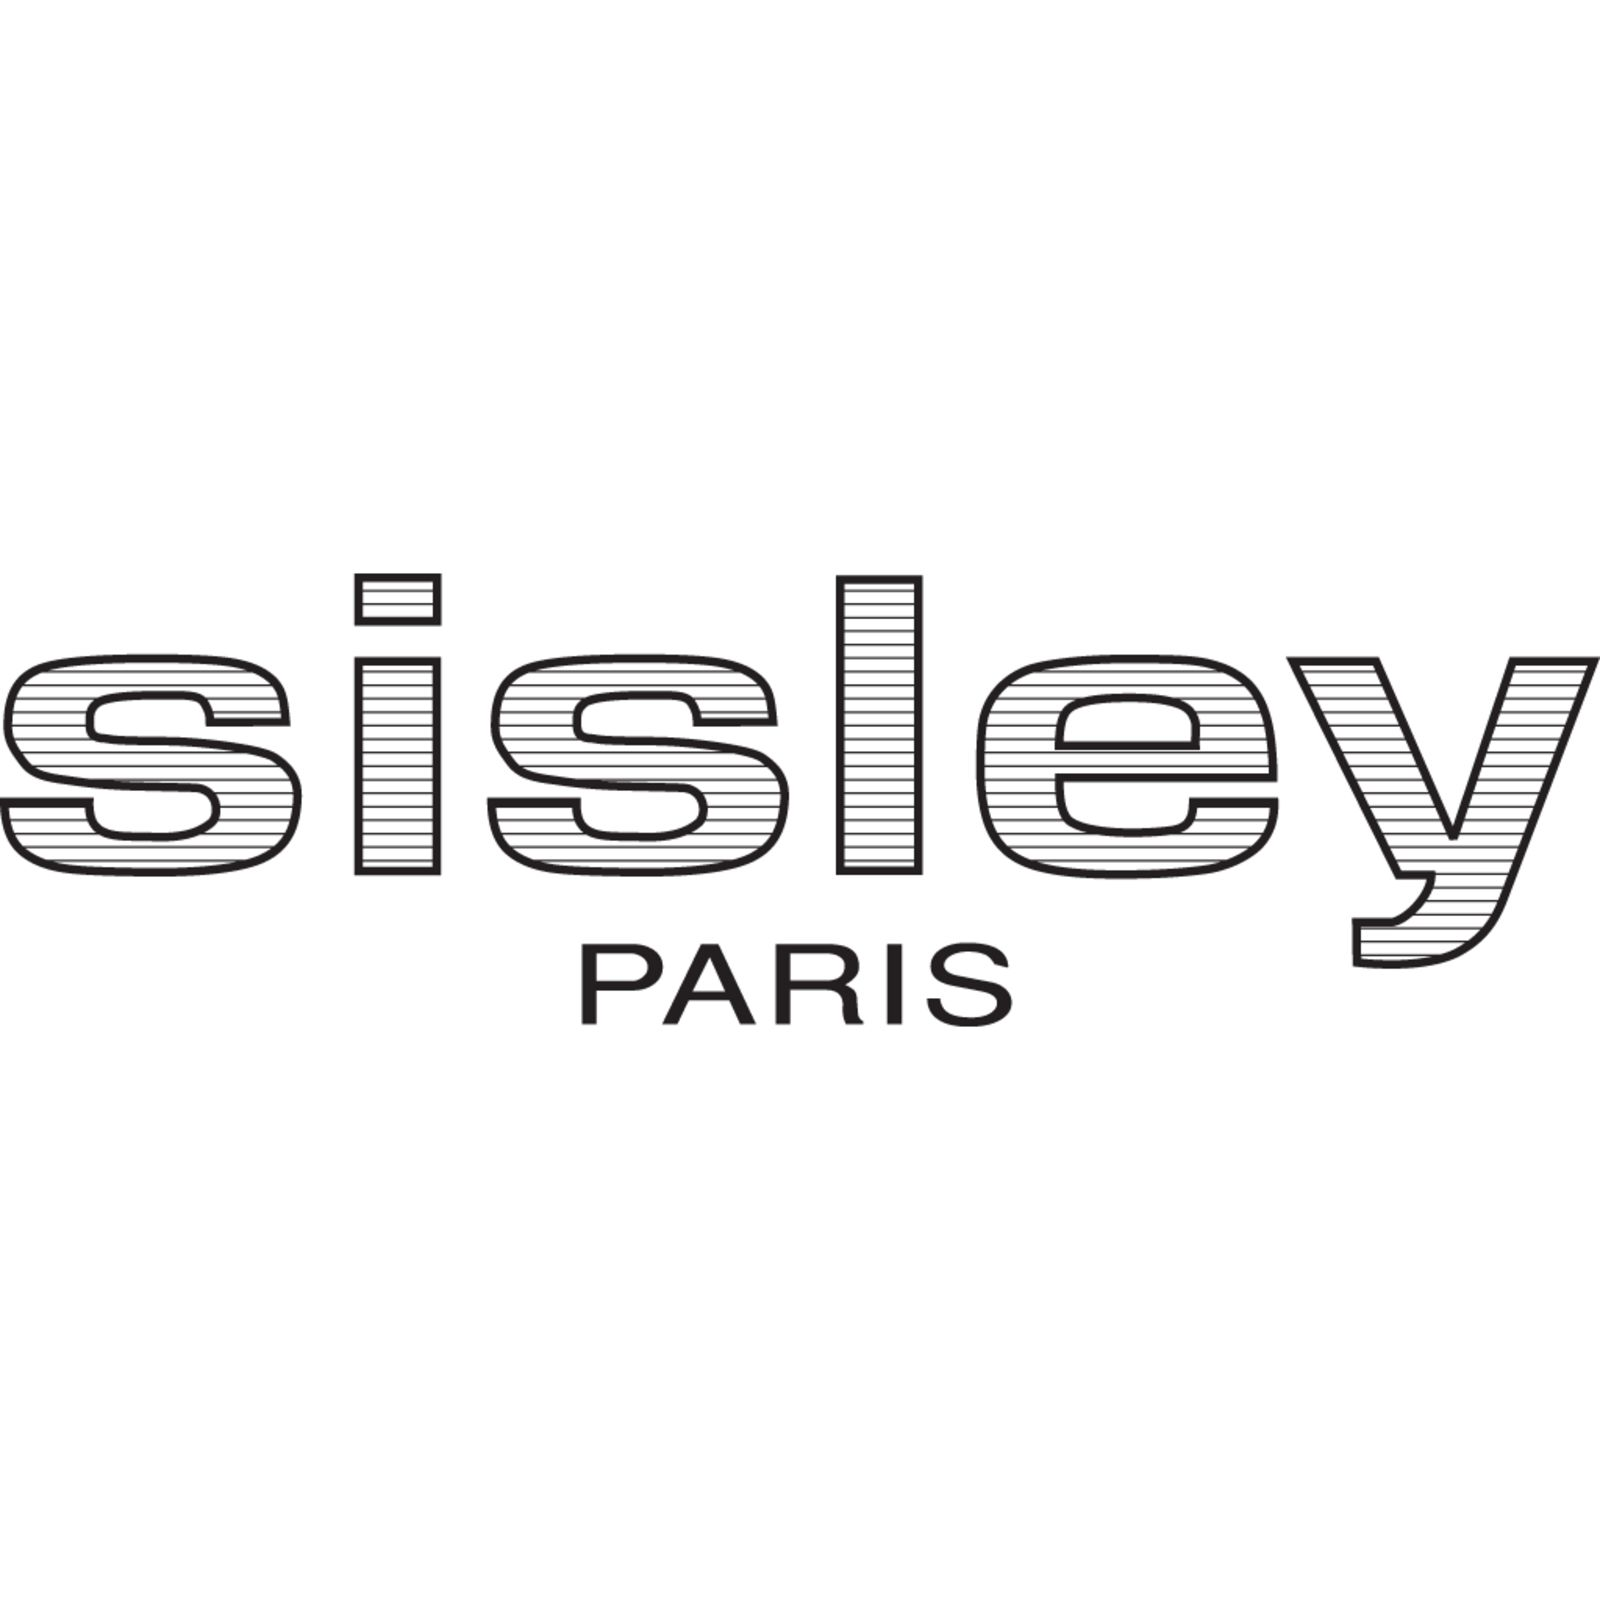 sisley cosmetics PARIS